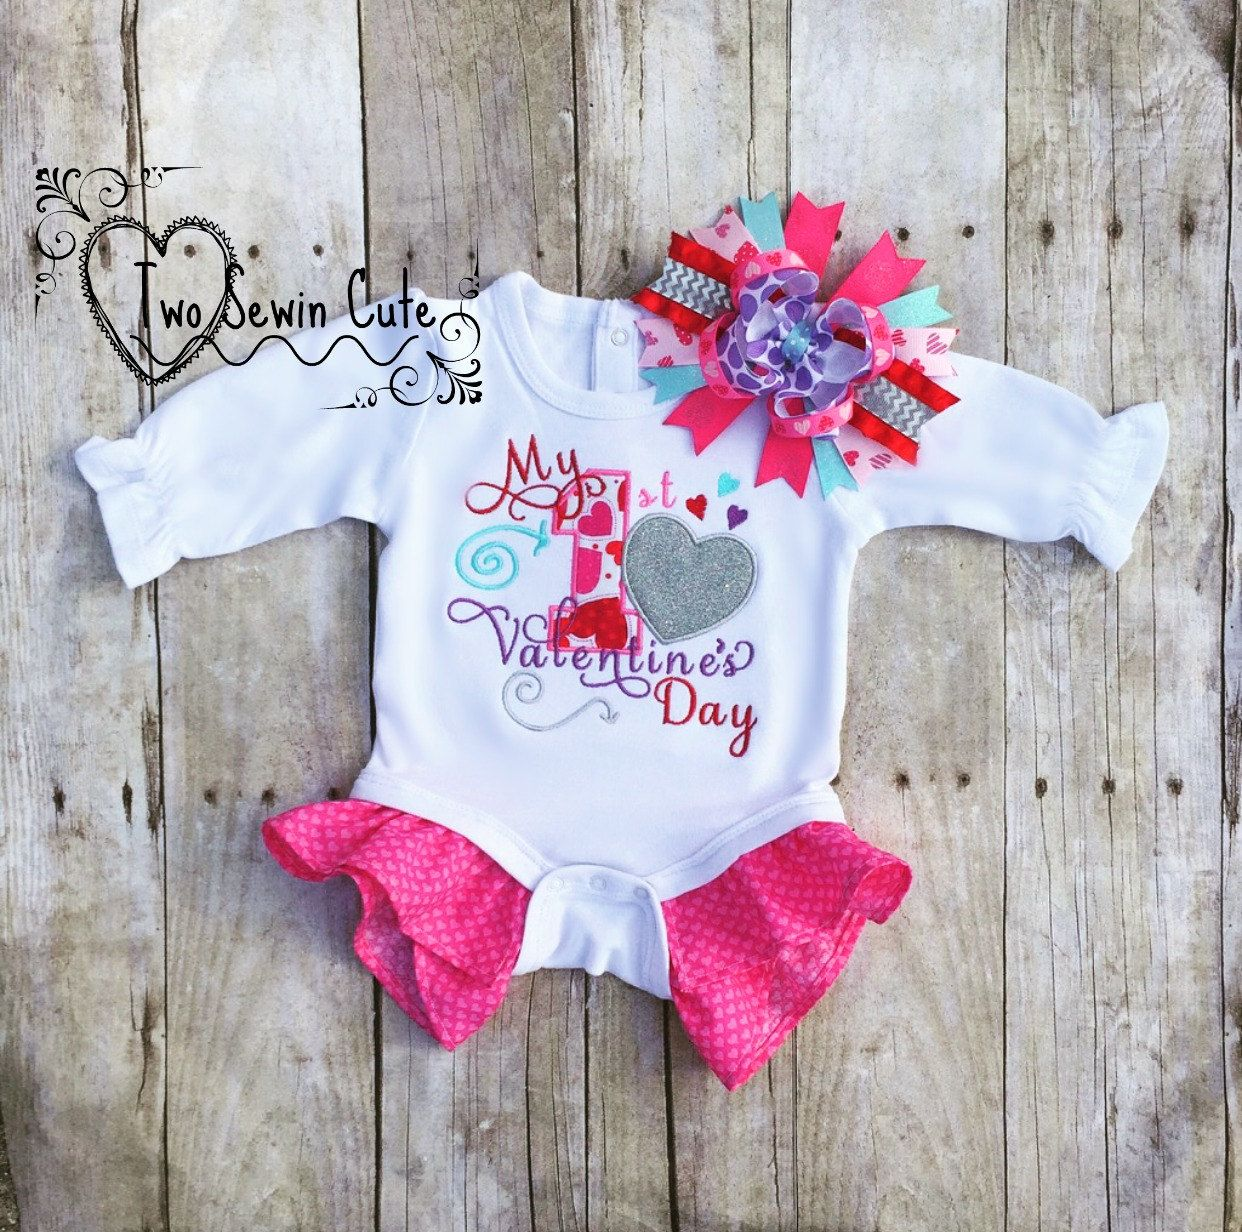 My First Valentine's Day Bodysuit, Valentine's Day Shirt,My 1st Valentine's Day Shirt, Baby's First Valentine's Day, READY TO SHIP 0-3 m by TwoSewinCute on Etsy